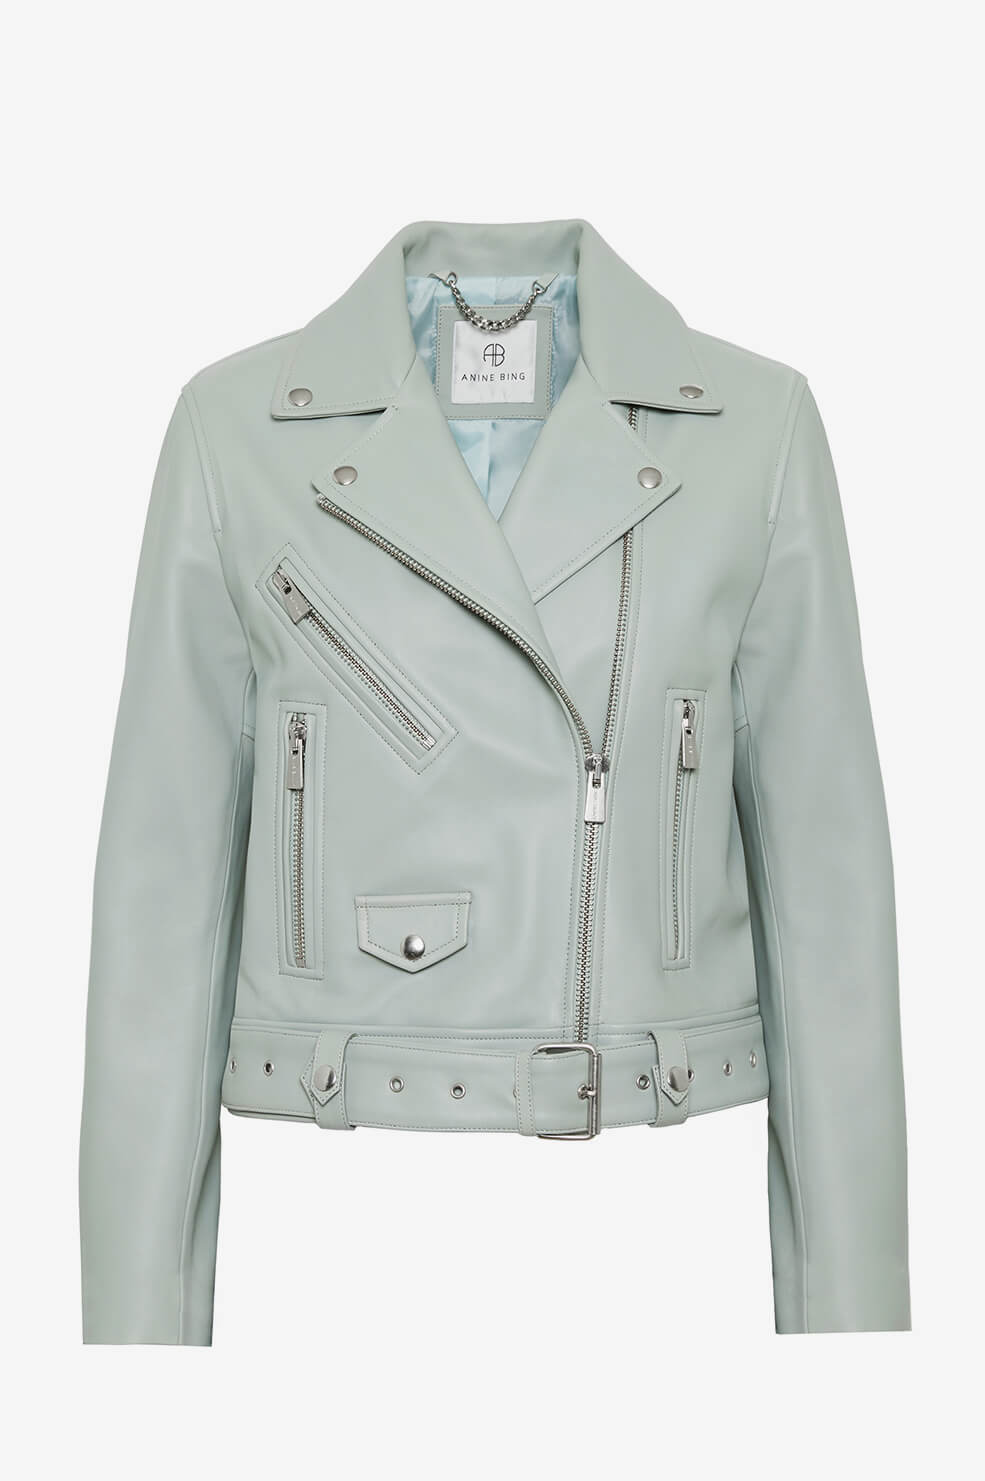 ANINE BING Benjamin Moto Jacket - Dusty Mint